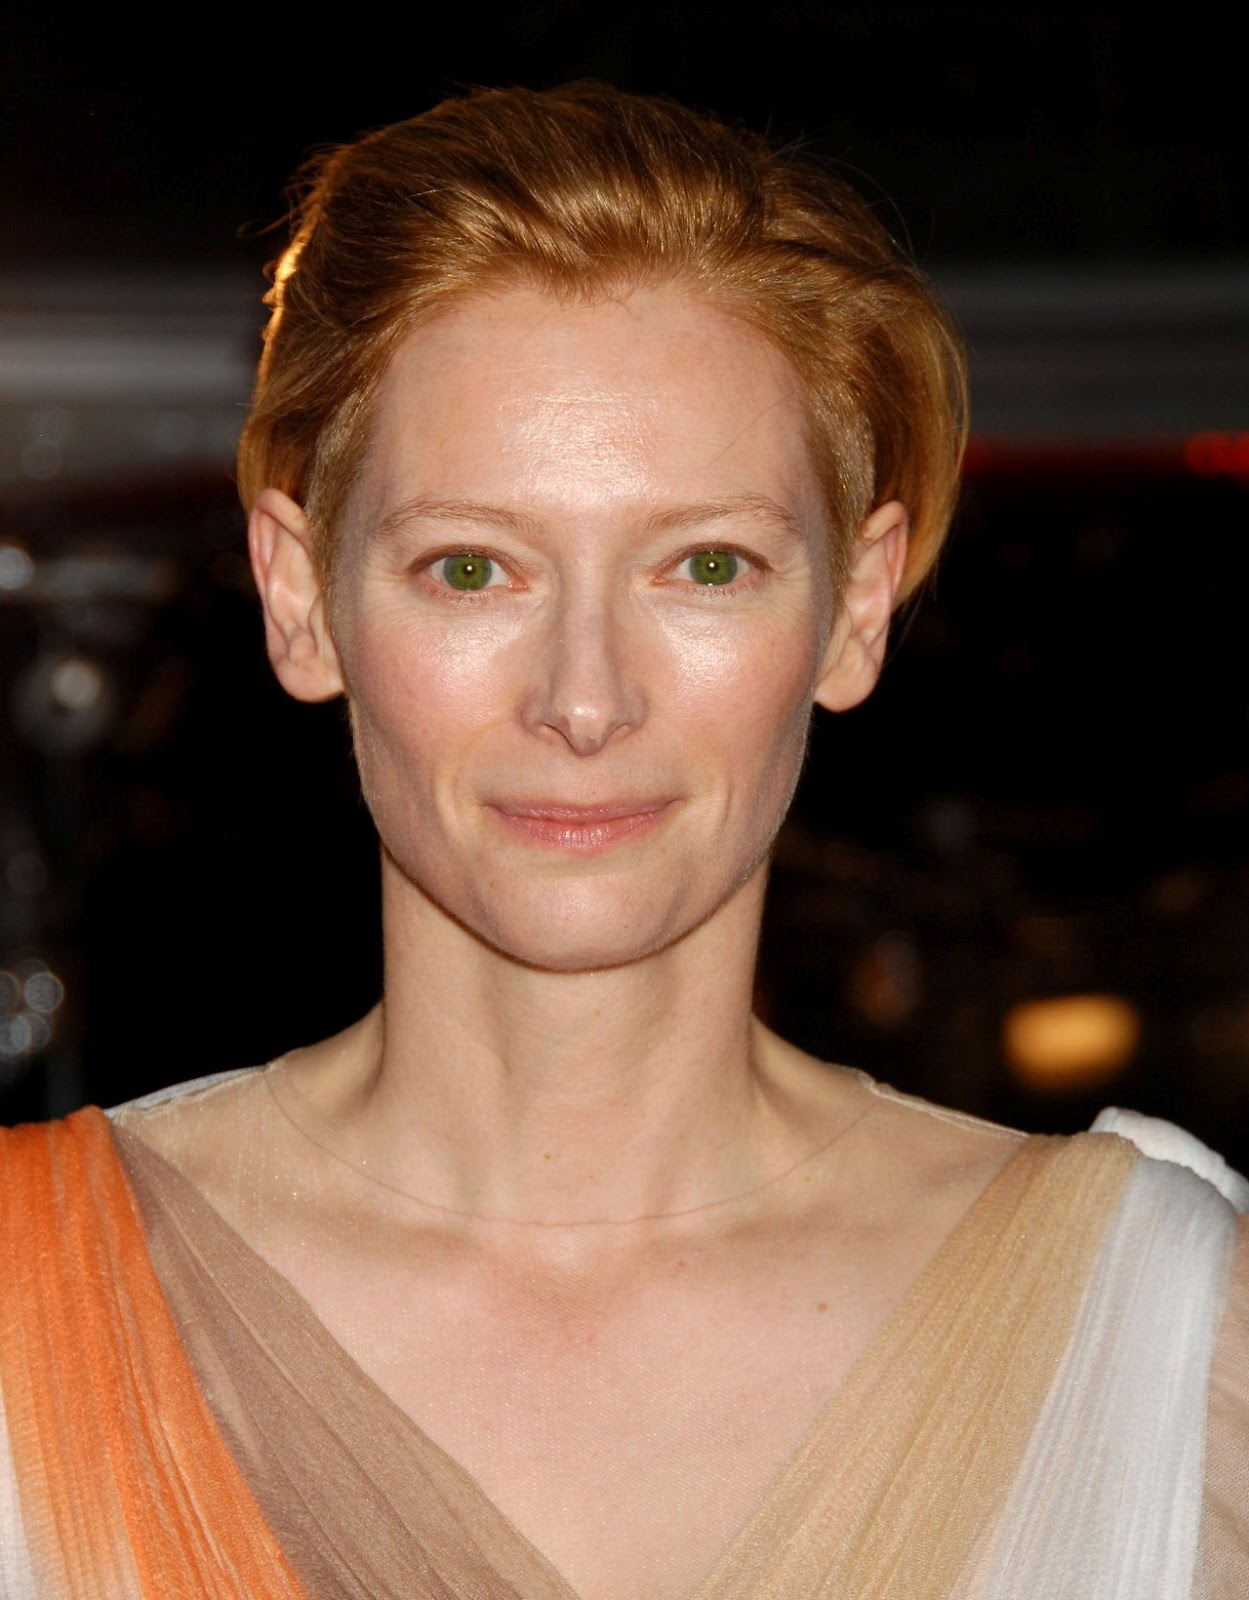 Tilda swinton we need to talk about kevin - 4 5